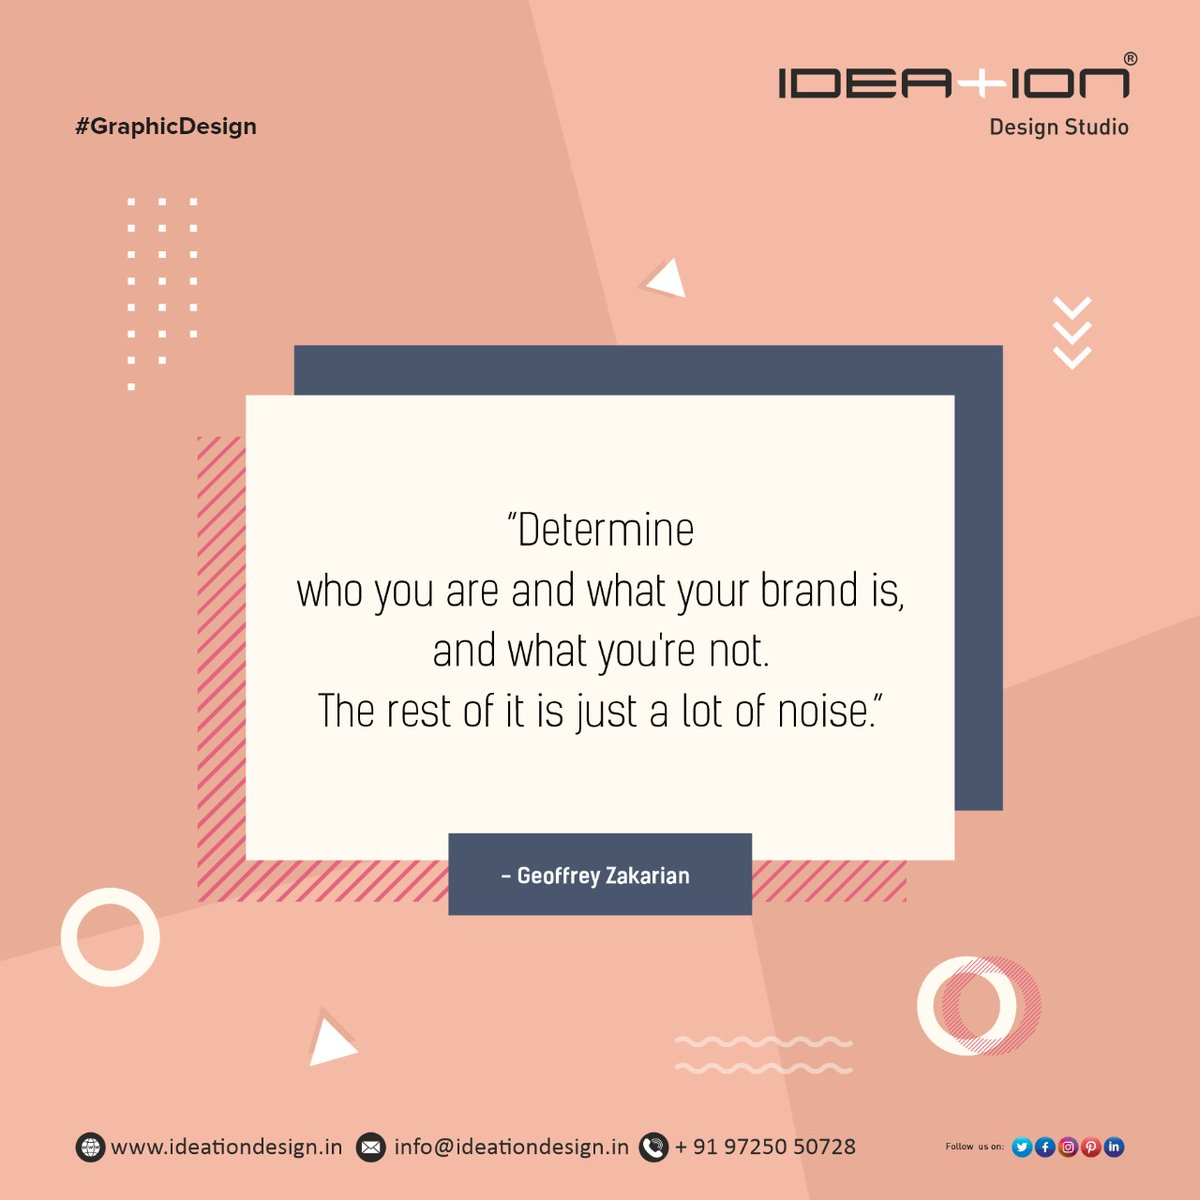 """""""Determine who you are and what your brand is, and what you're not. The rest of it is just a lot of noise.""""  #ideation #graphic #art  #design #illustration #artist #creative  #logo #graphic  FOR ANY GRAPHIC DESIGN REACH US @ +91-9725050728 or Email on: info@ideationdesign.in"""